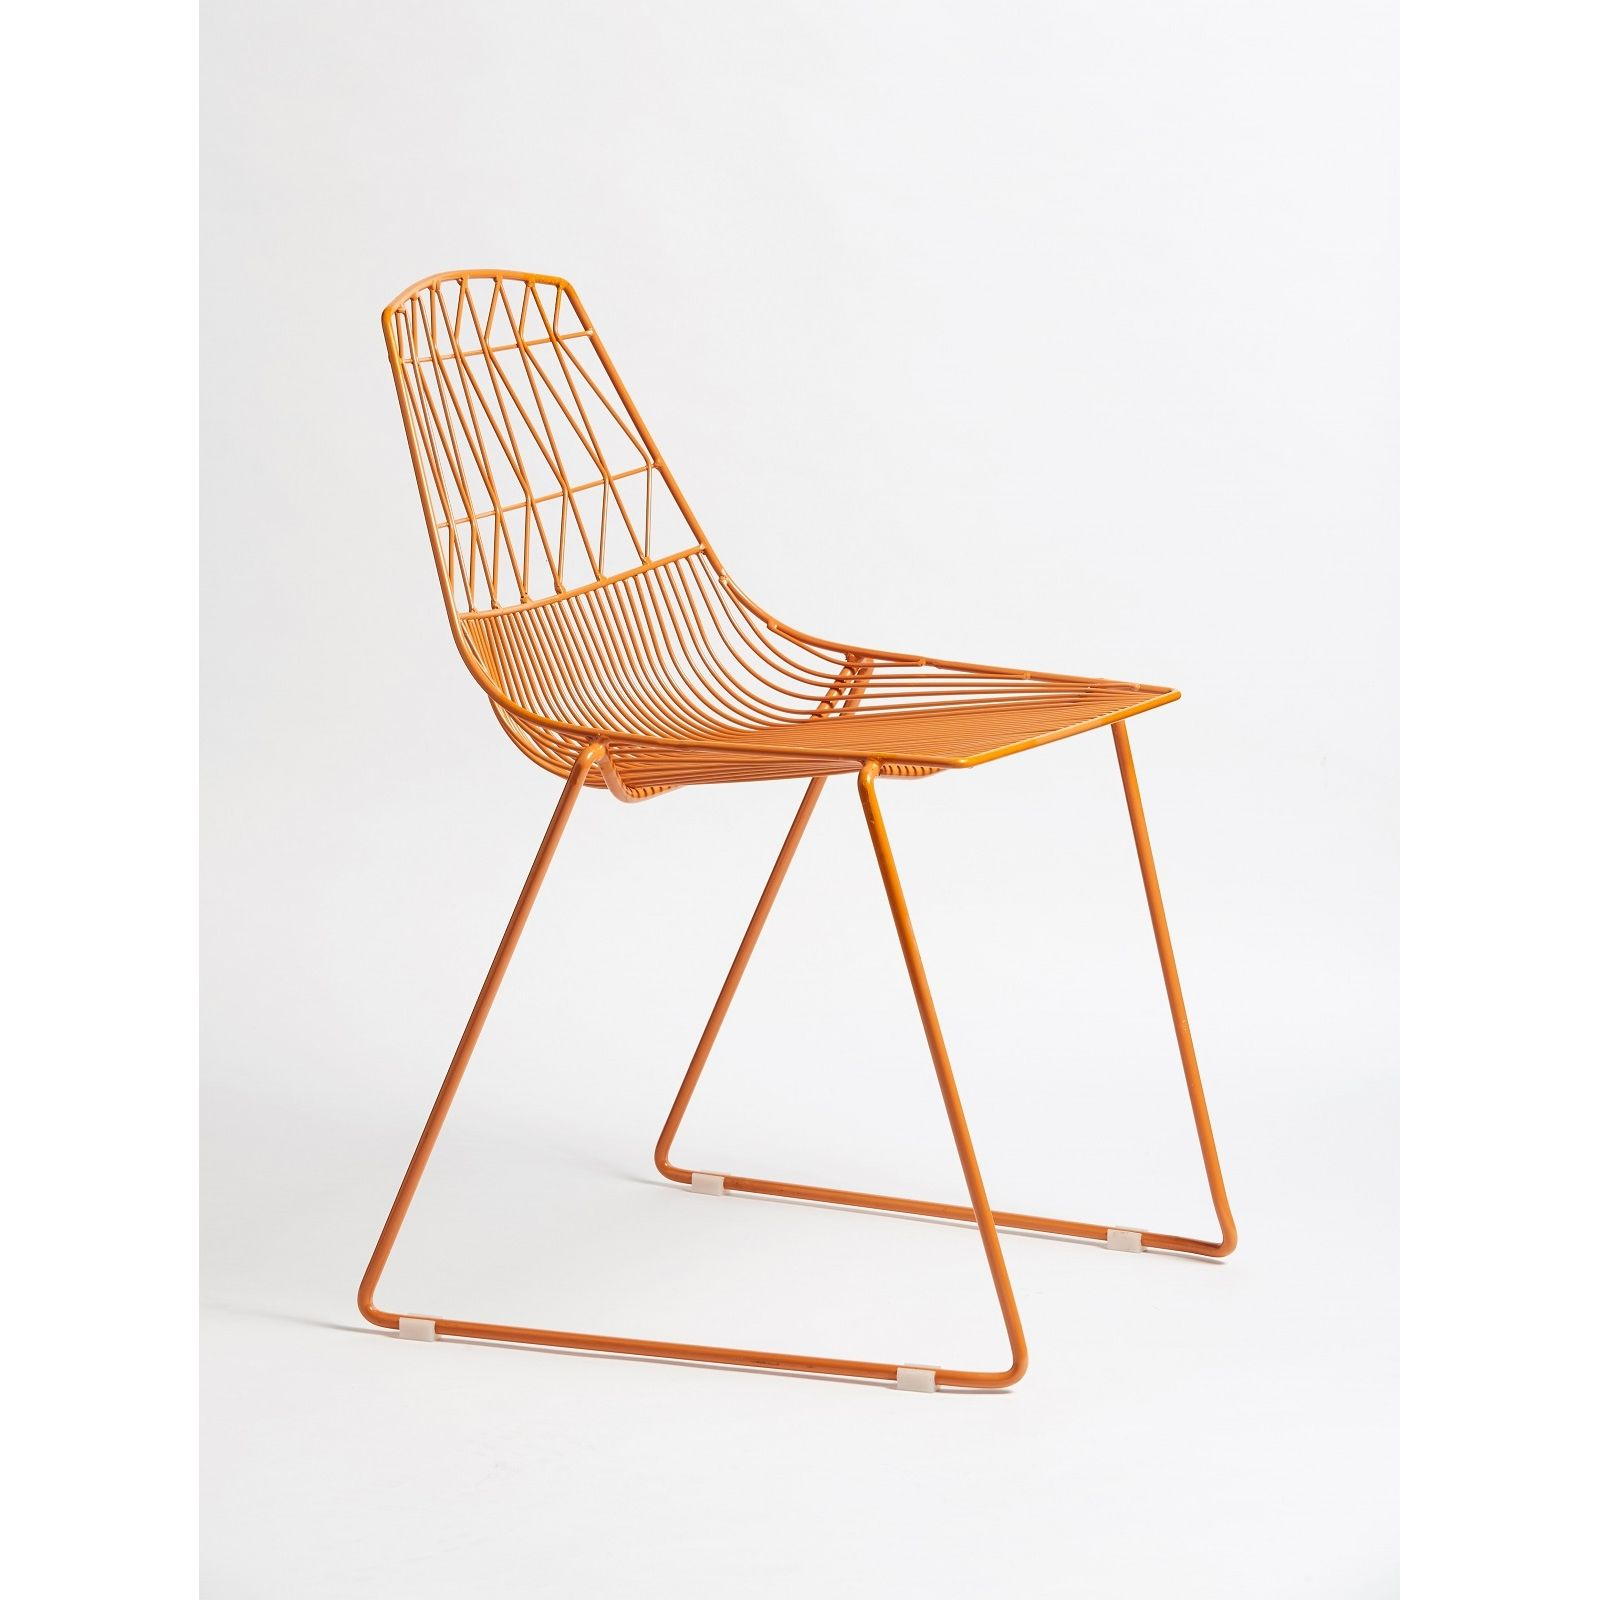 Find marquee orange baha chair at bunnings warehouse visit your local store for the widest range of outdoor living products